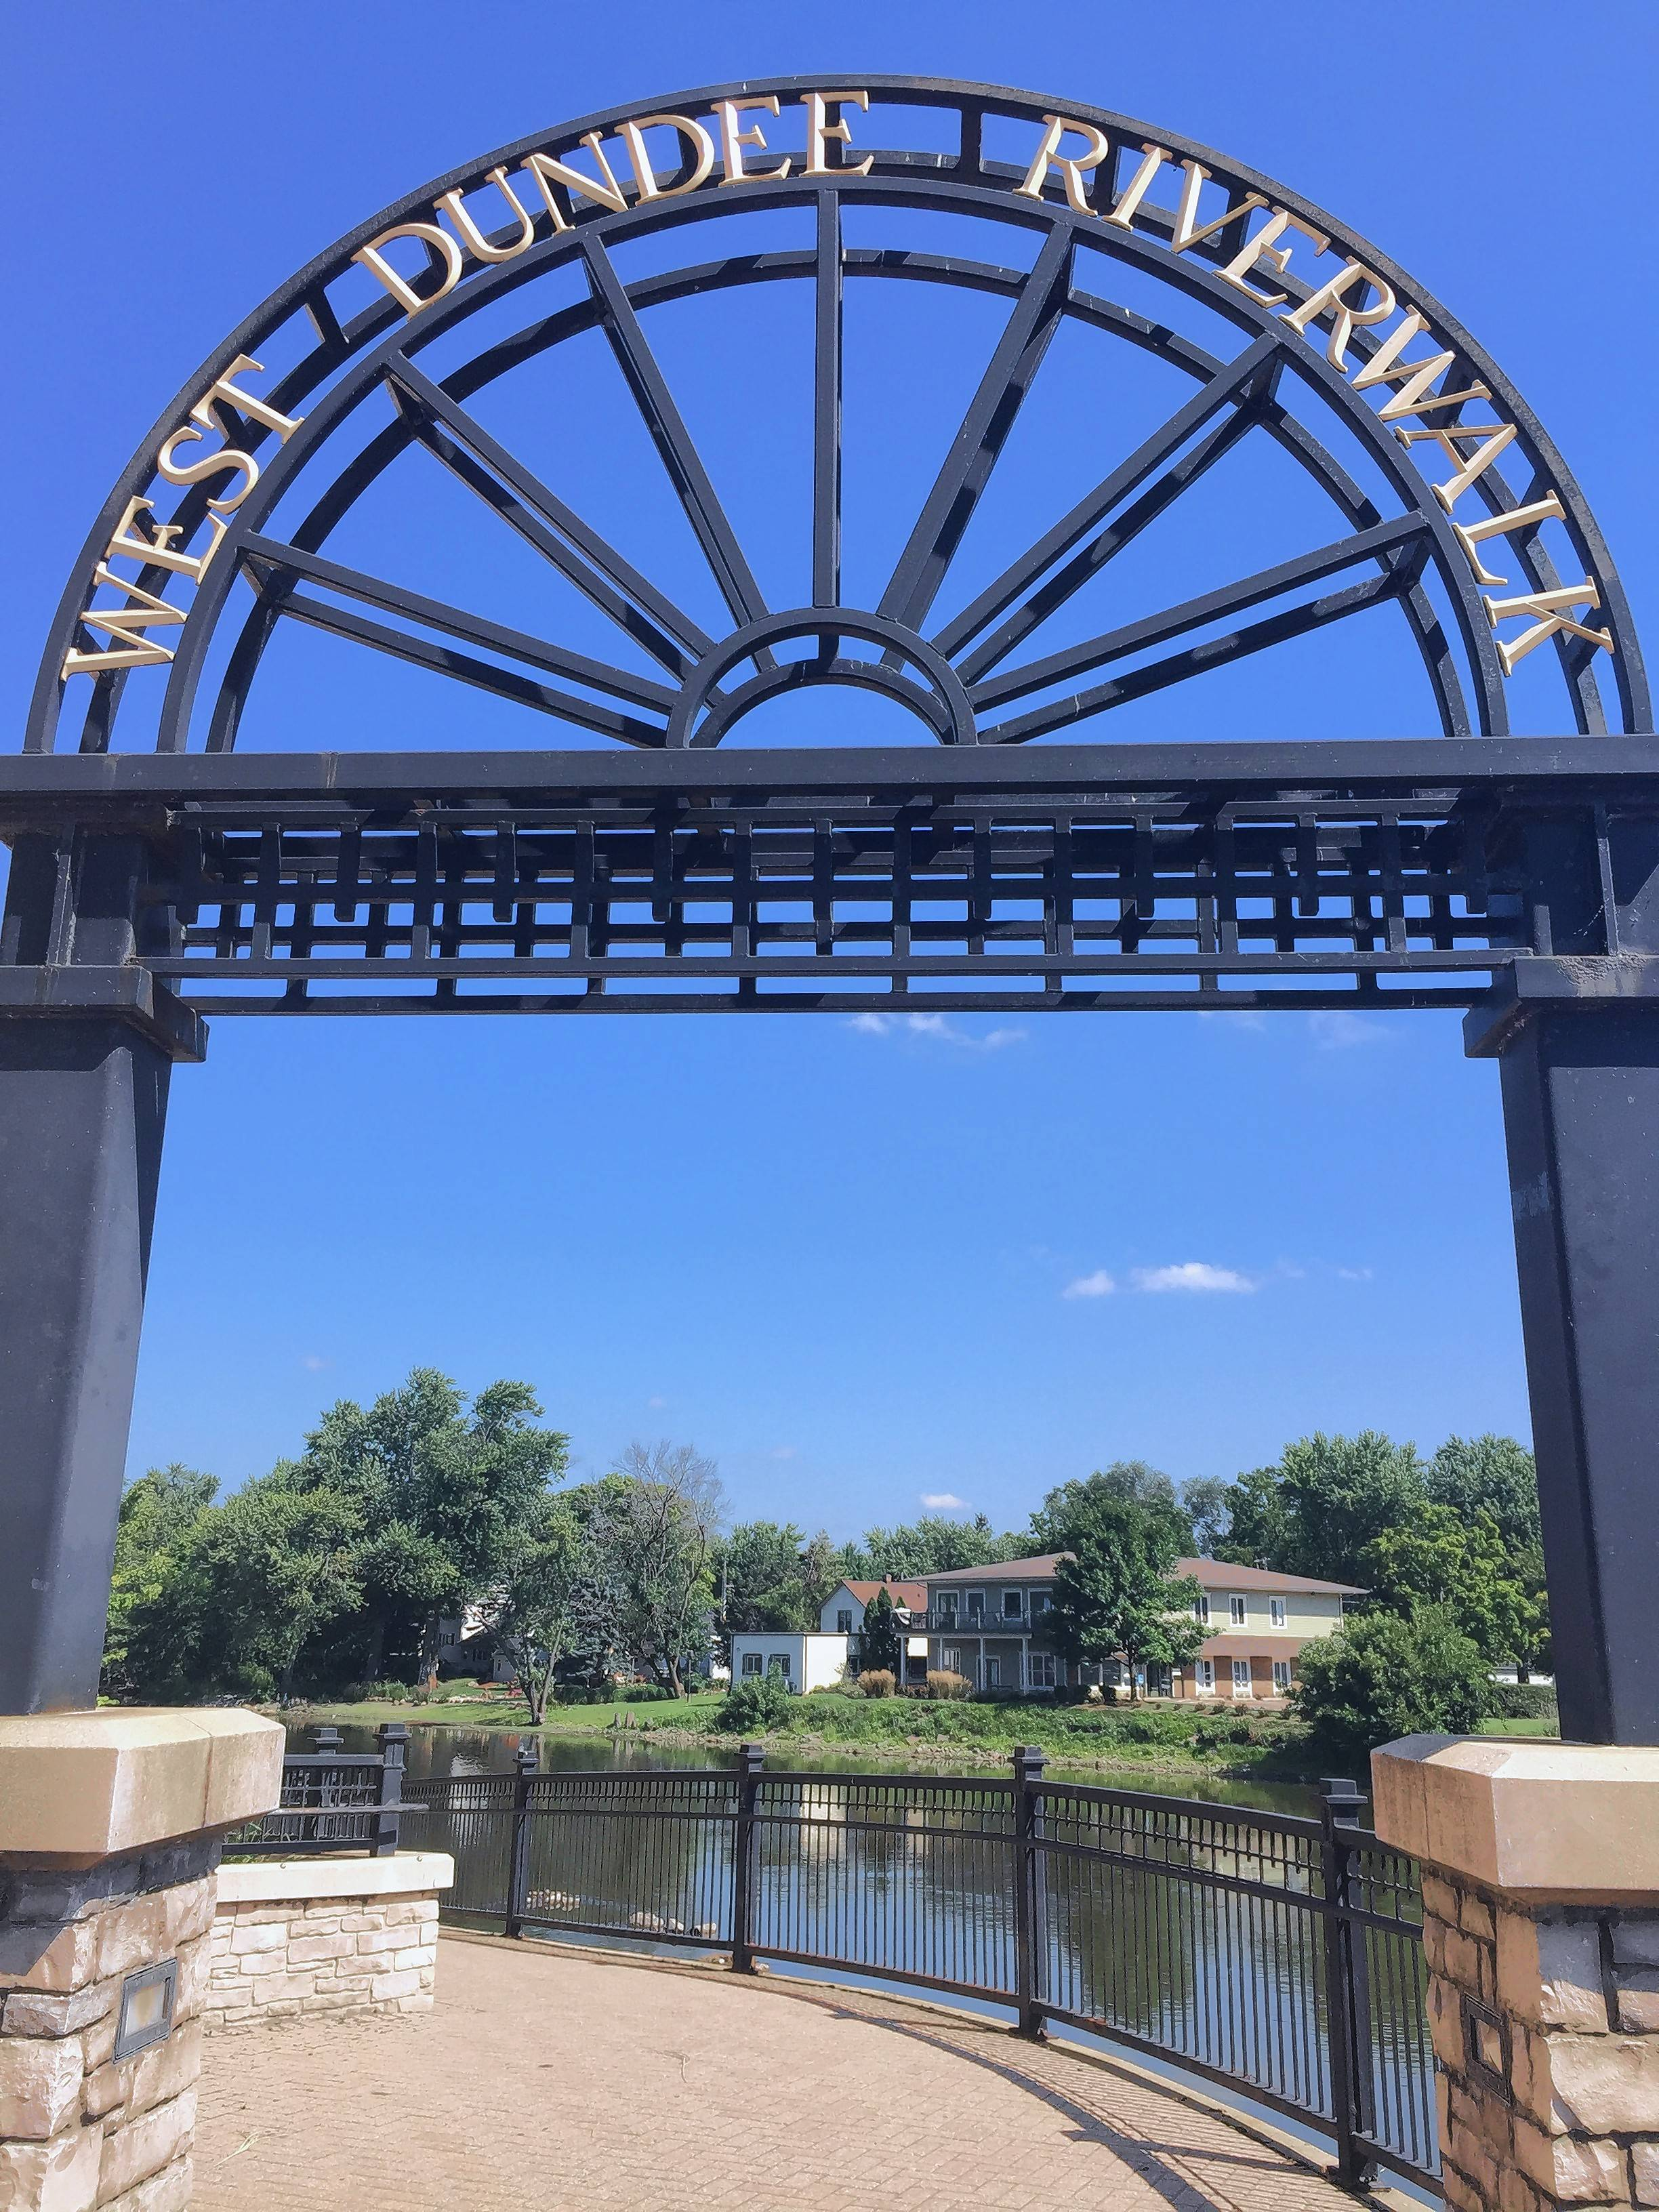 The West Dundee riverwalk gives pedestrians the chance to experience one of the village's most treasured assets and most important recreational areas: The Fox River.